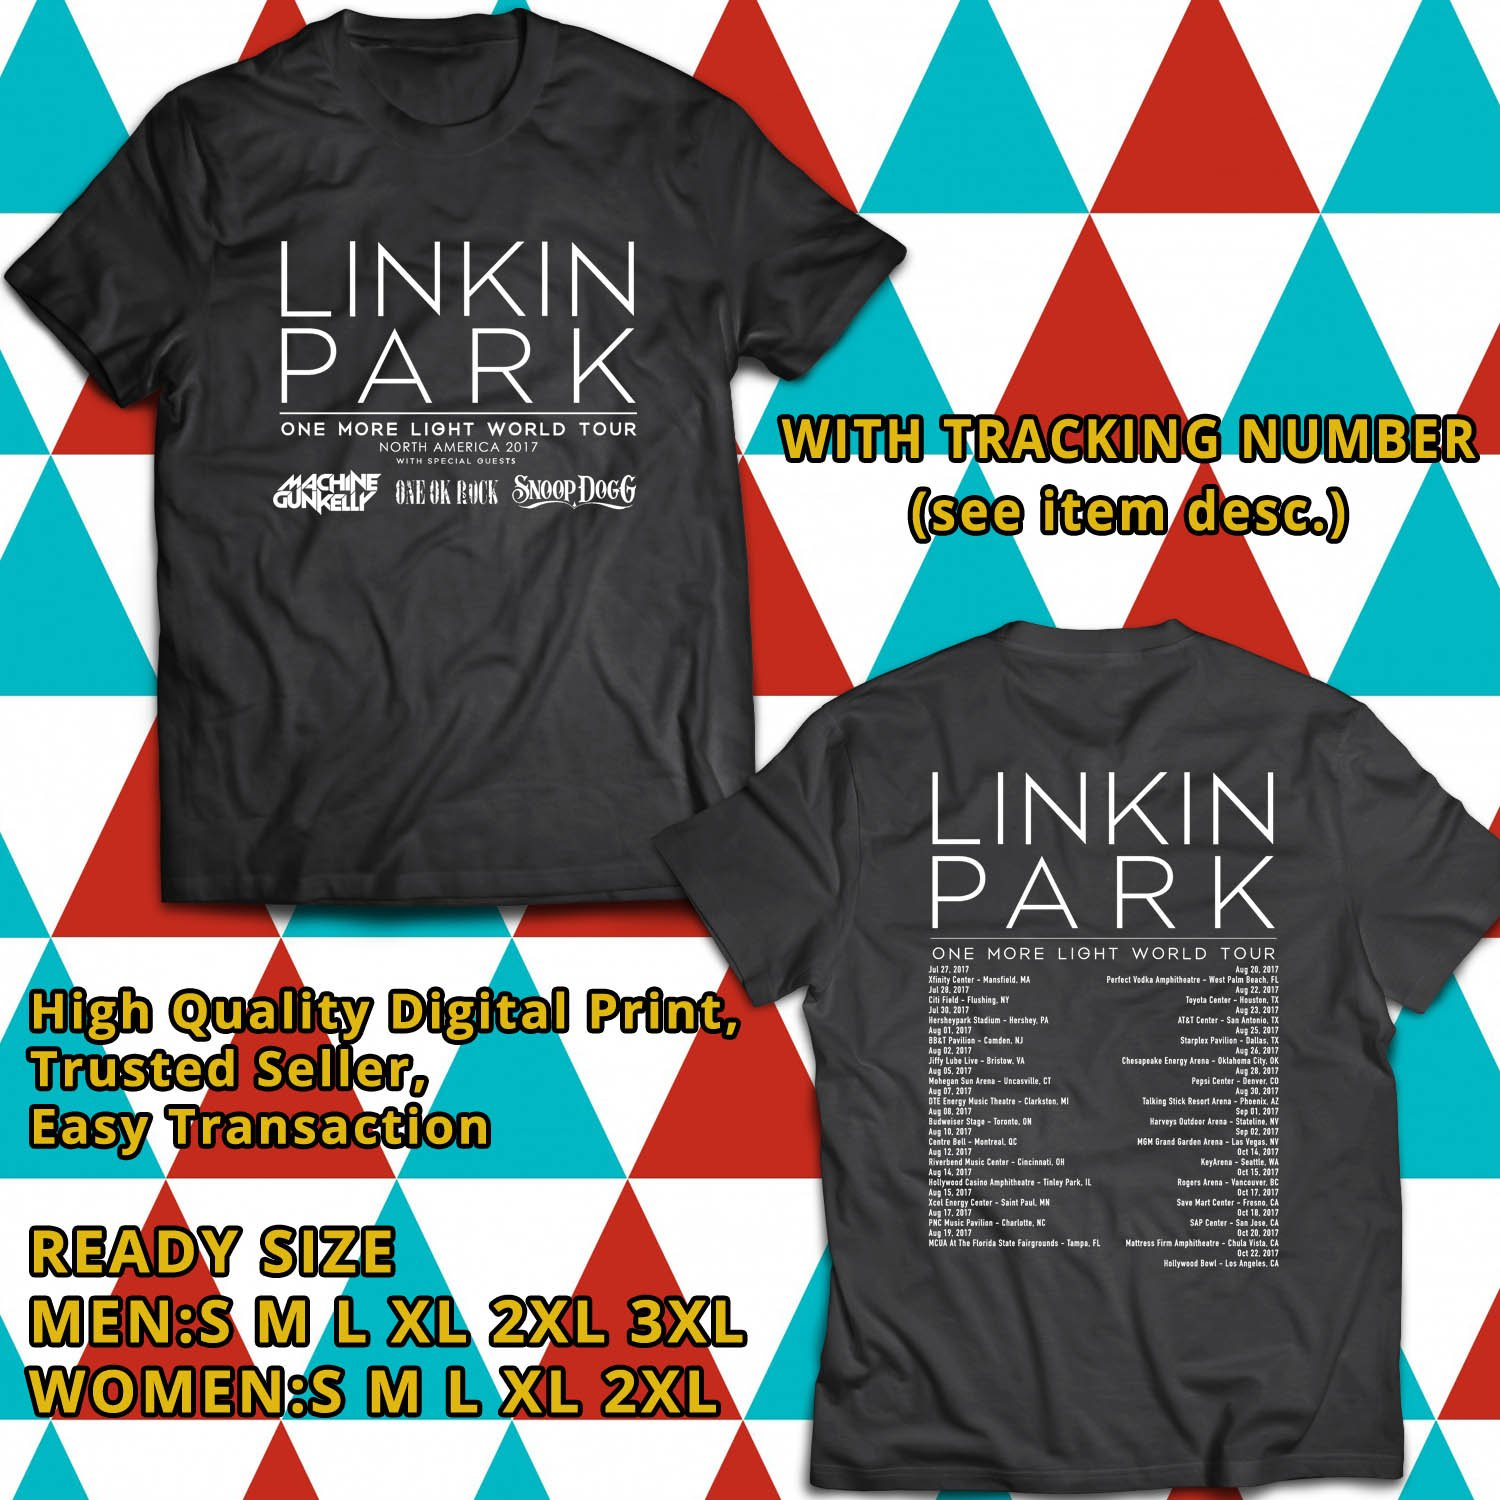 HITS LINKIN PARK ONE MORE LIGHT TOUR 2017 BLACK TEE'S 2SIDE MAN WOMEN ASTR 887